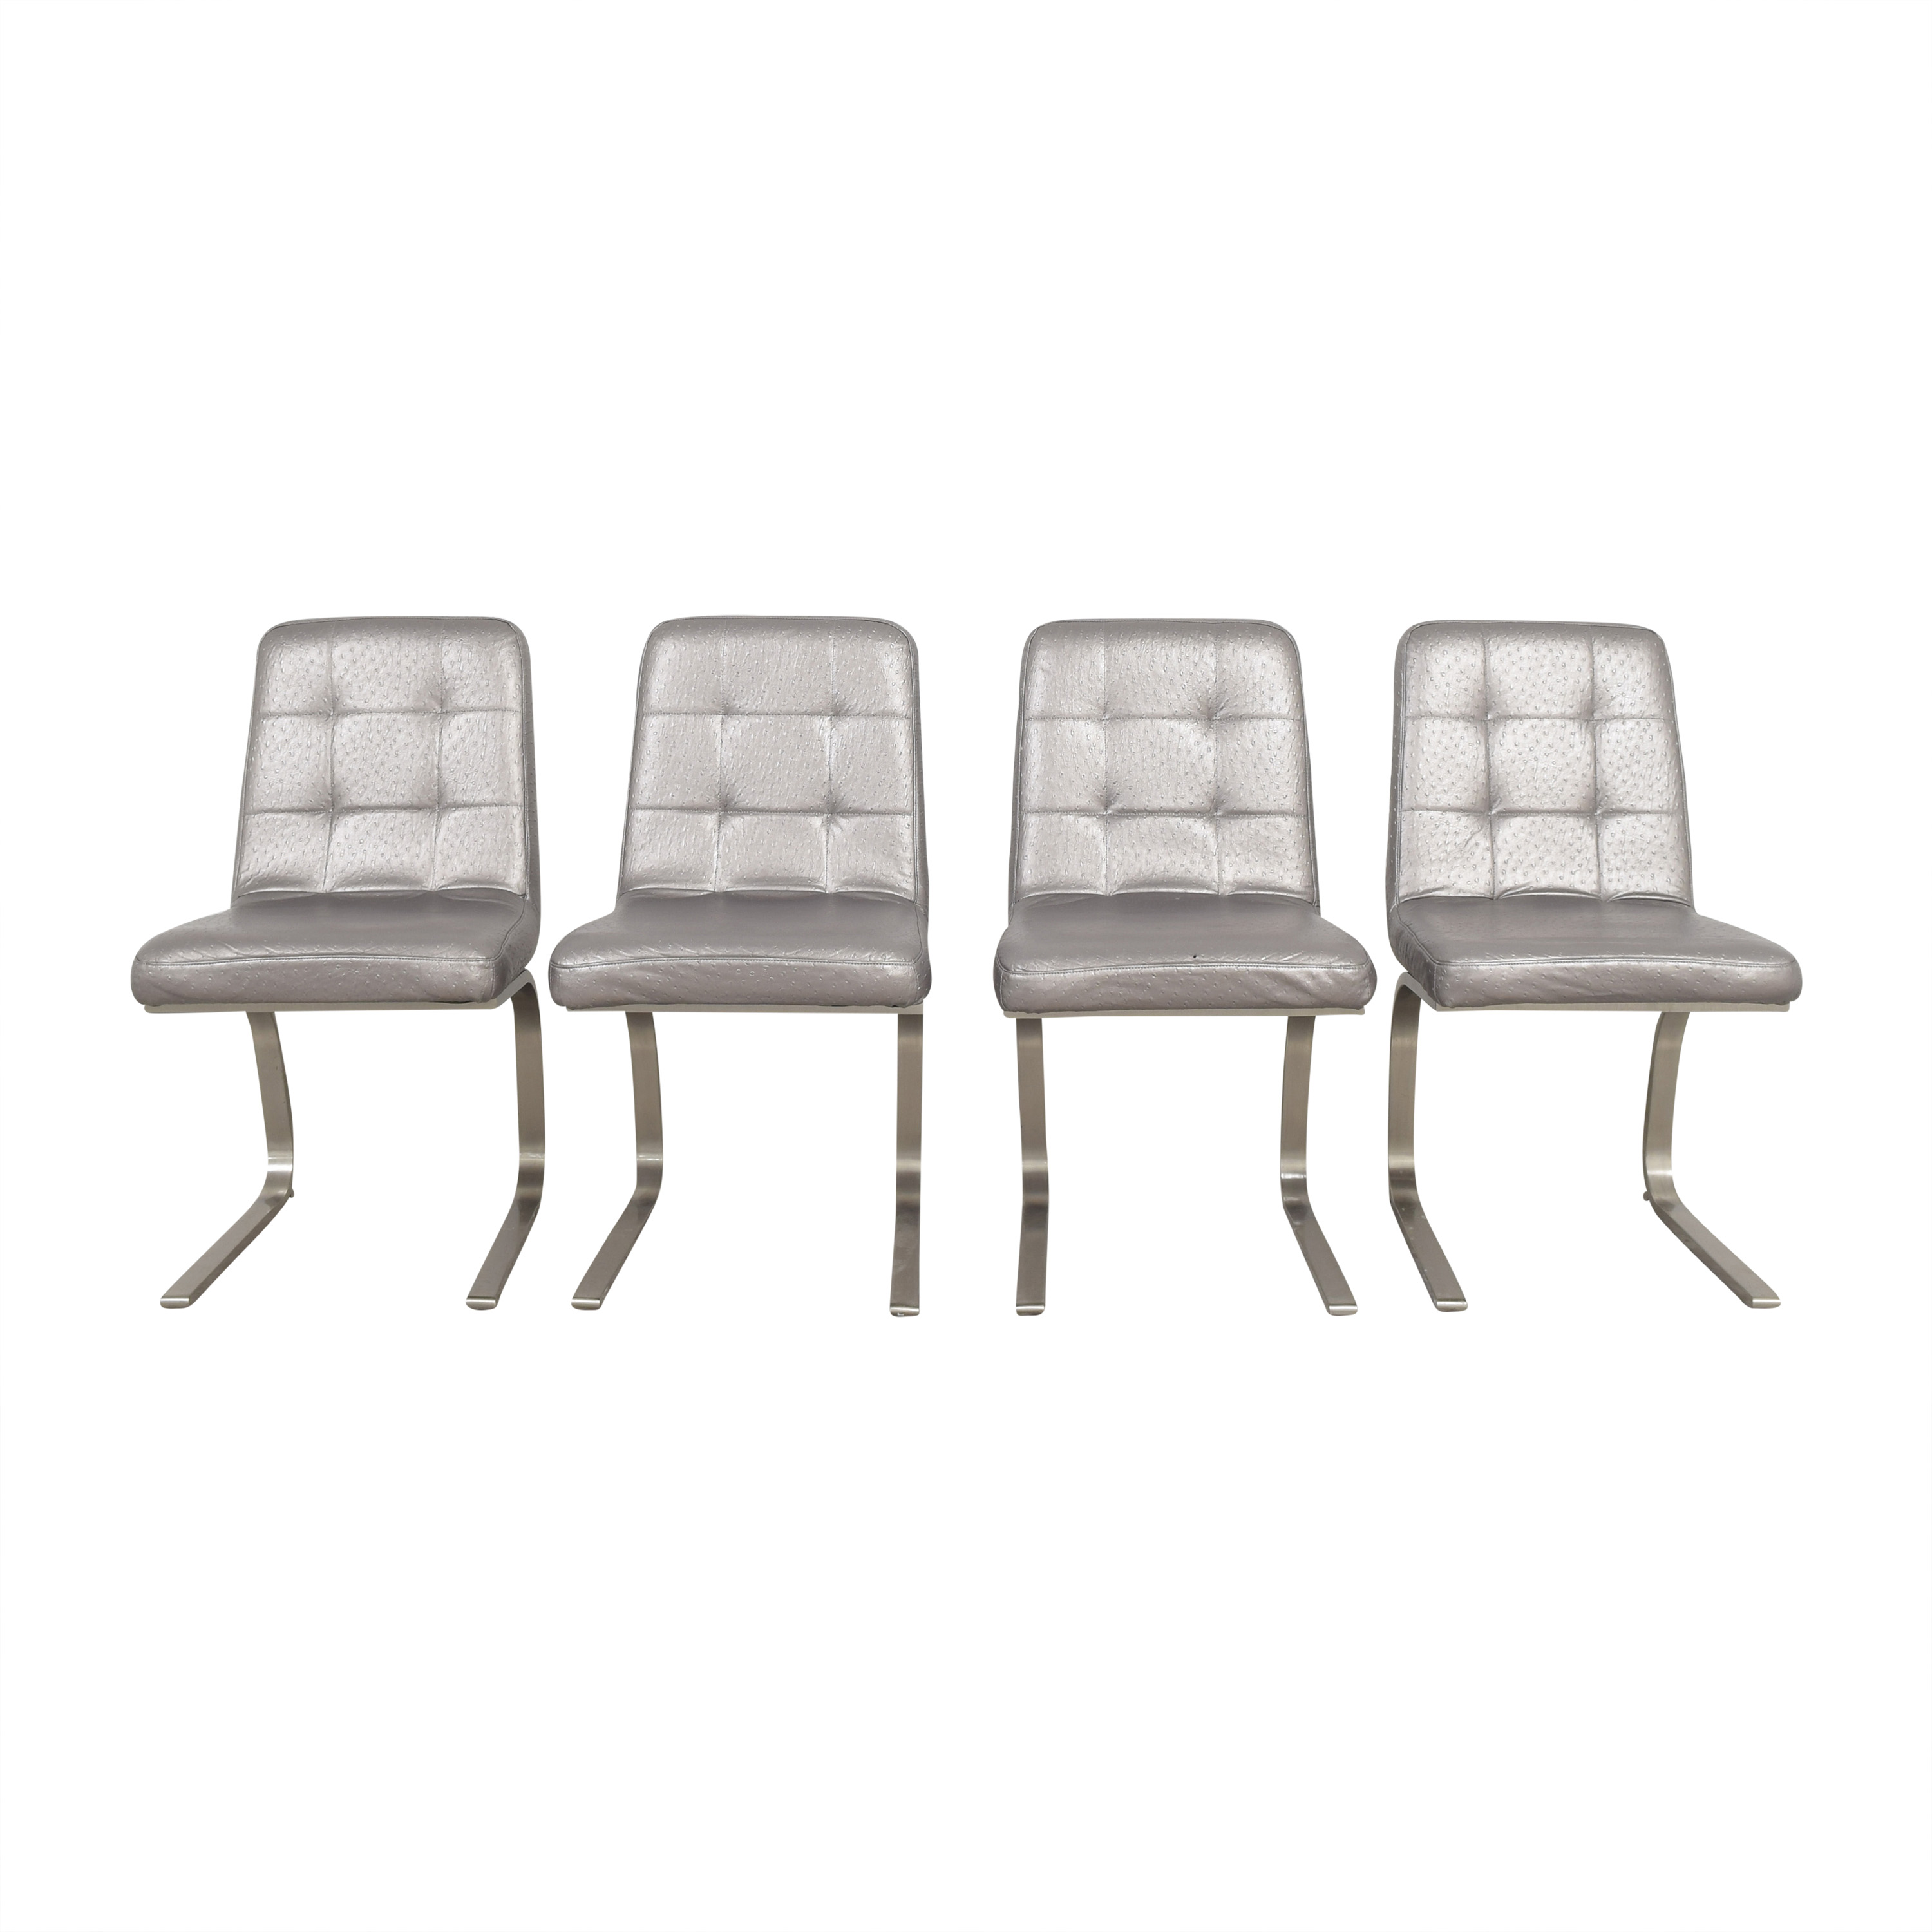 Decor NYC Decor NYC Tufted Embossed Dining Chairs price